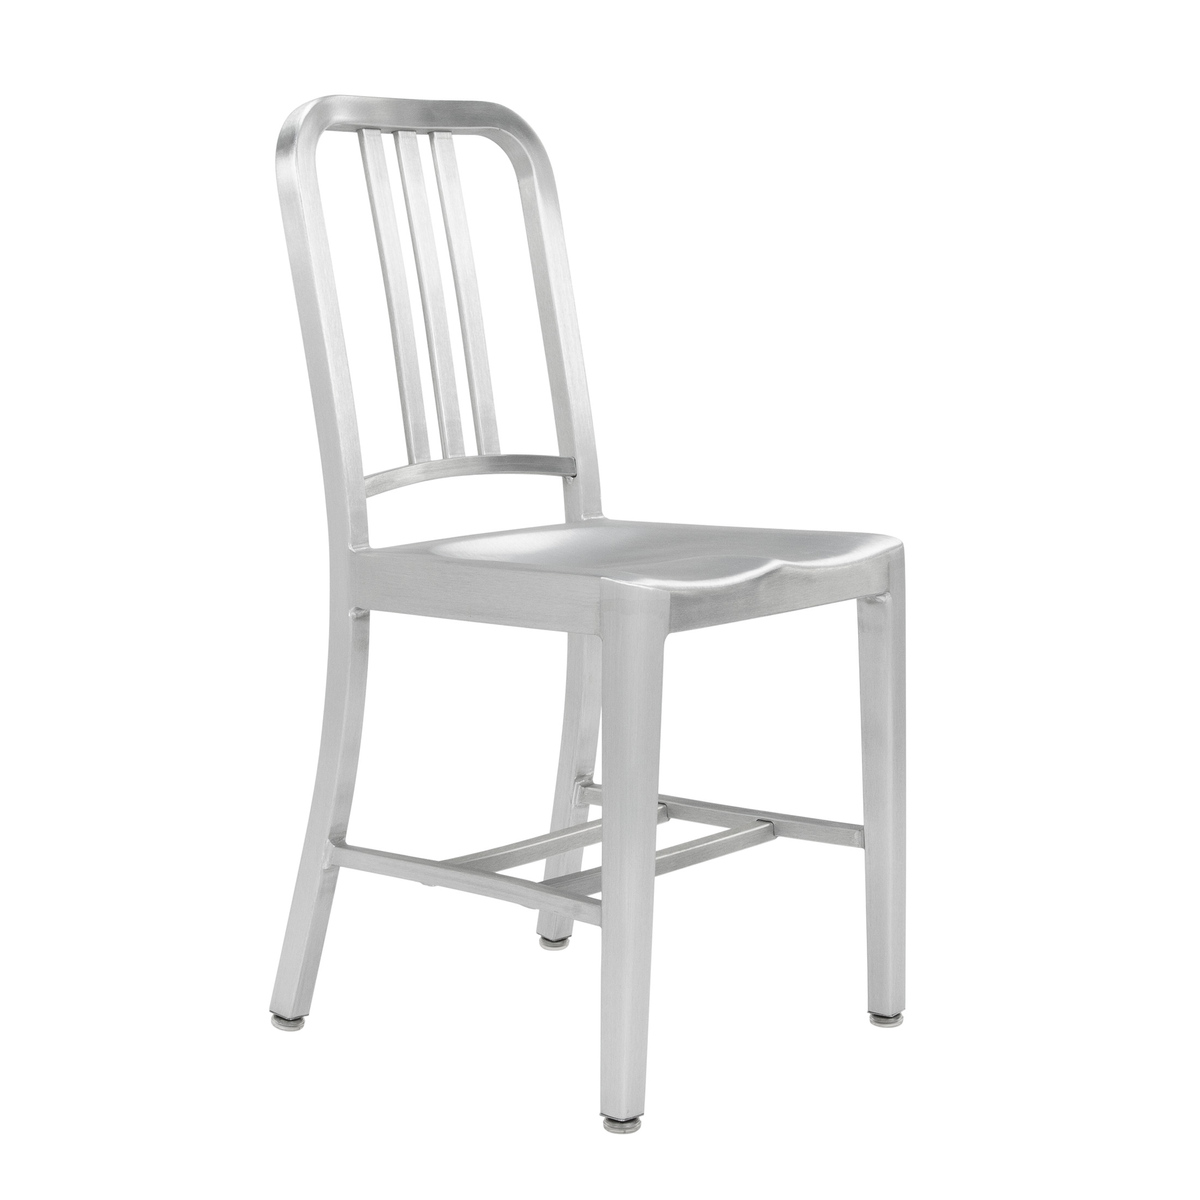 brushed aluminum chairs windsor rocking chair navy